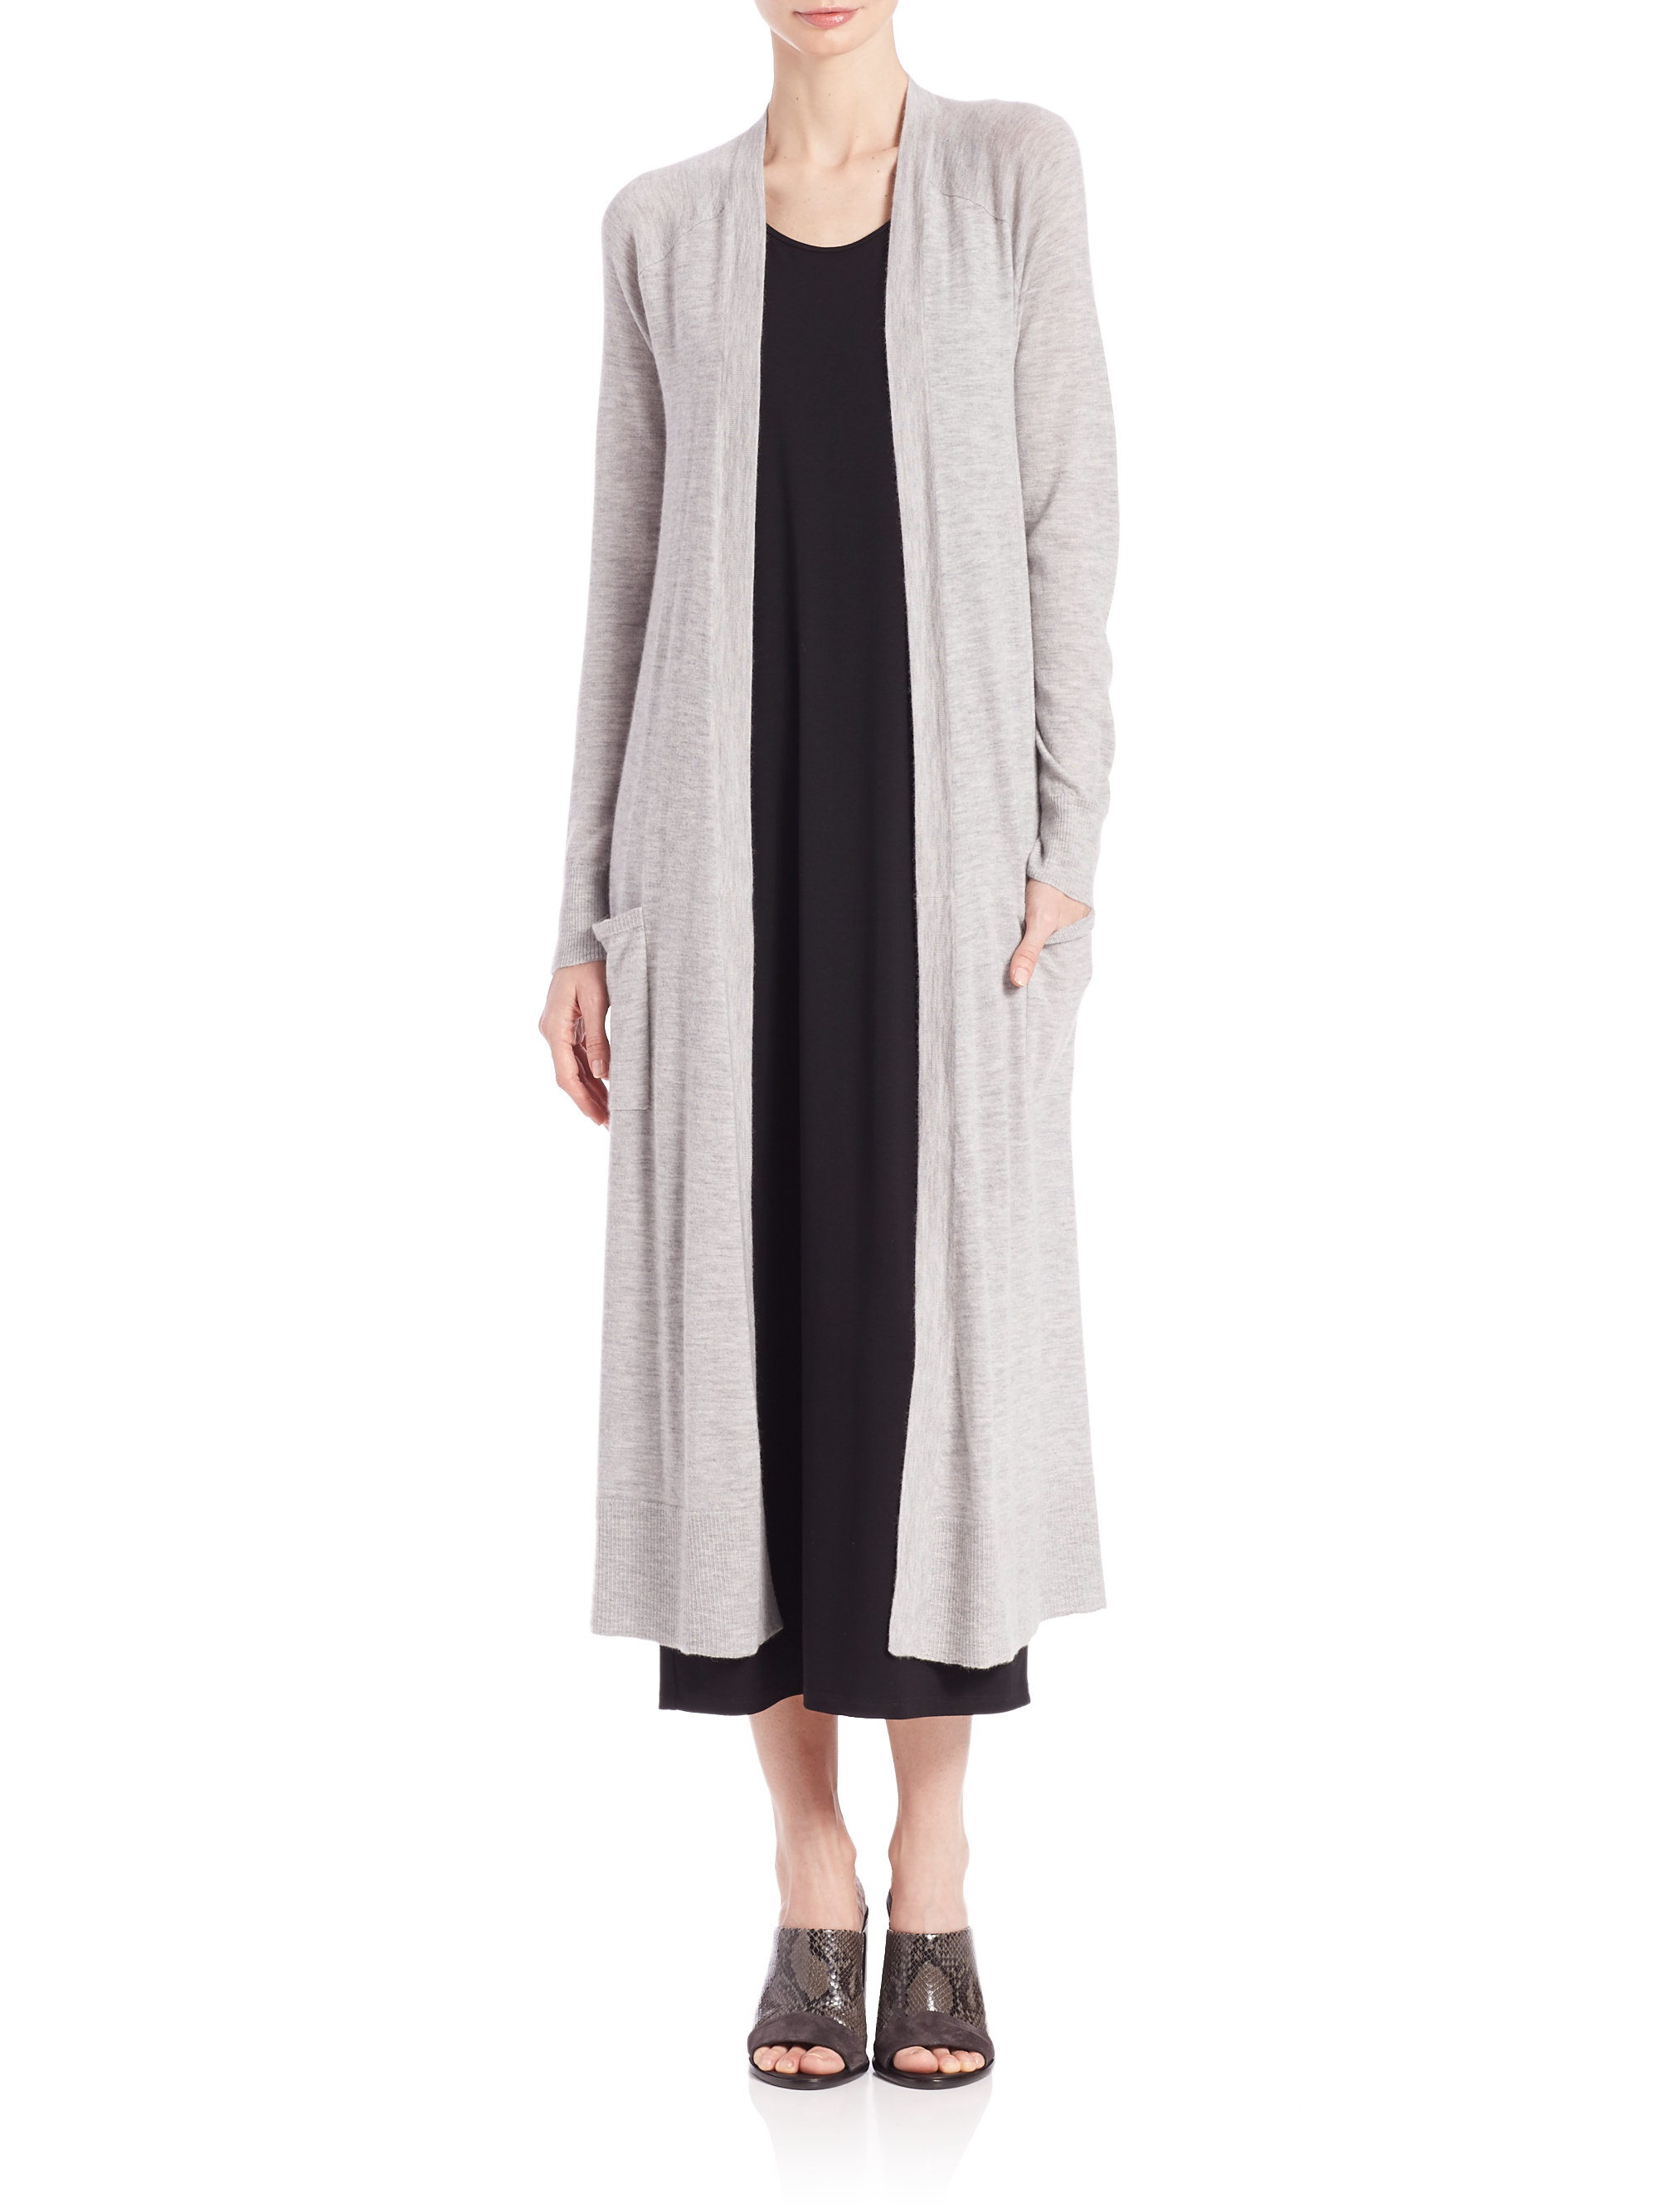 Eileen fisher Cashmere Long Cardigan in White | Lyst